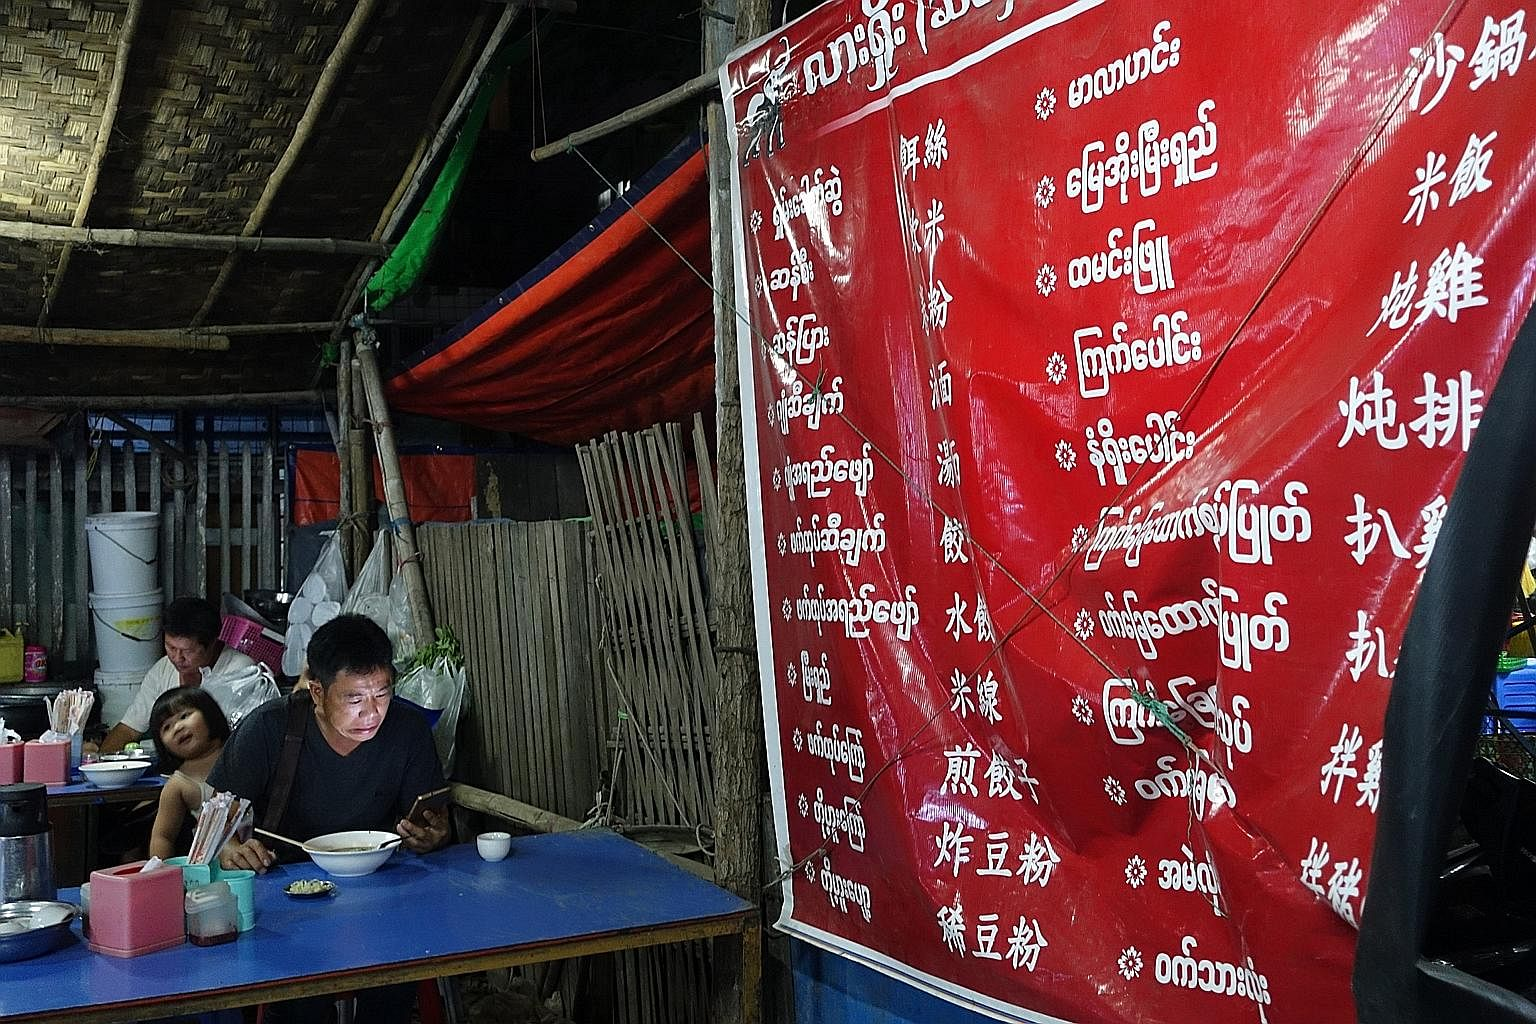 Advertisements for Chinese brands light up downtown Mandalay. The former royal capital, once lined with traditional wooden homes, now bustles with hotpot restaurants and Chinese boutiques selling Duoyi women's fashion, Erke sportswear and Oppo smartp